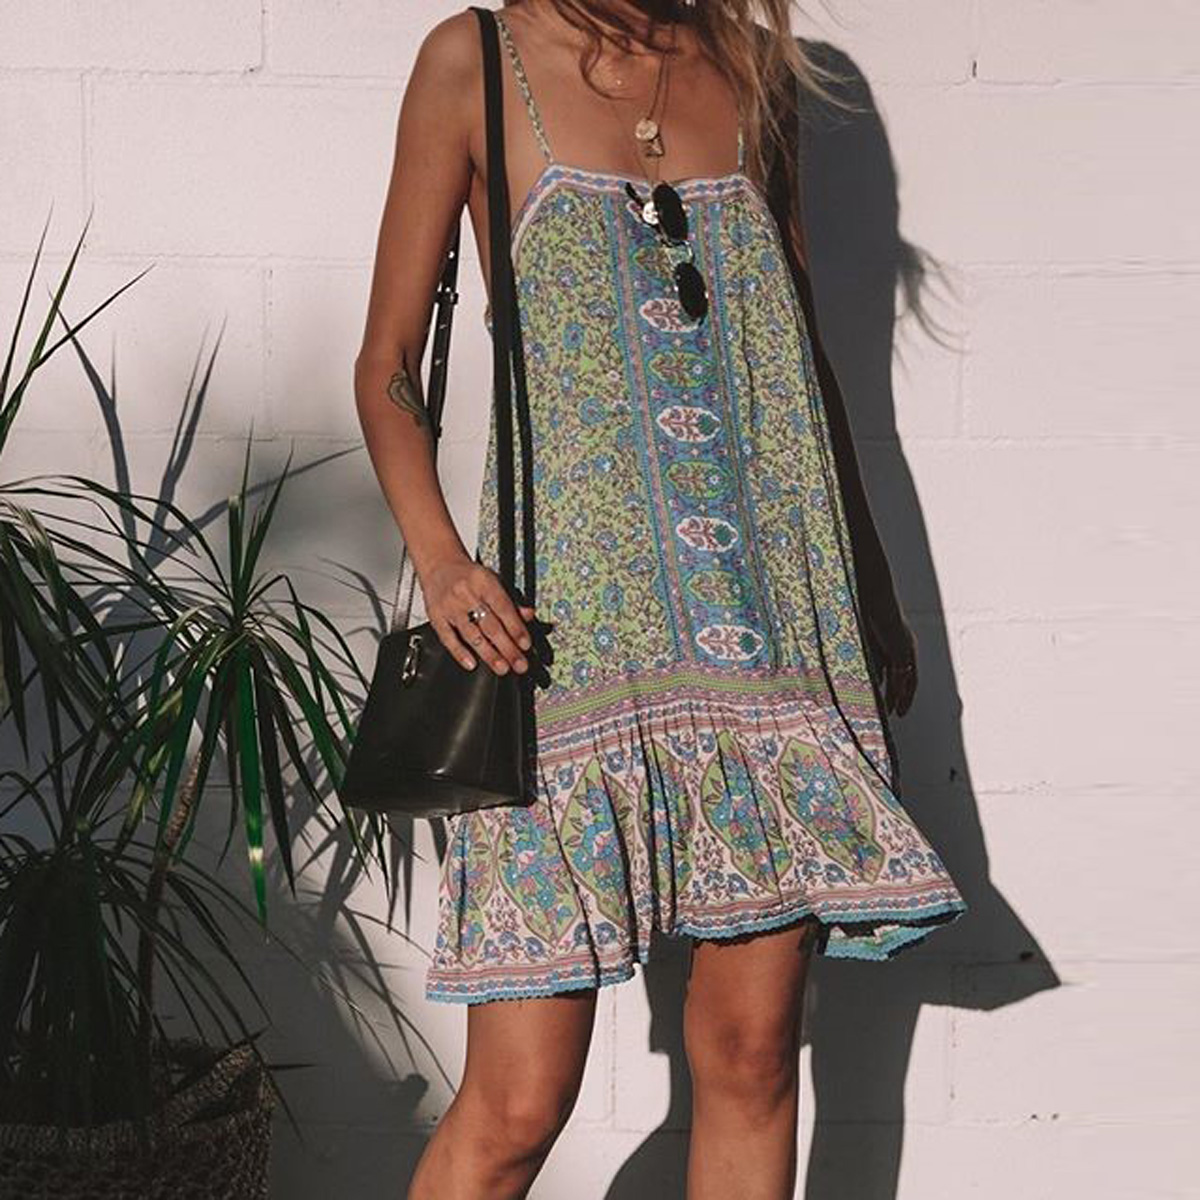 Jastie Jasmine Strappy Mini Dress Low Back Sexy Women Dresses Boho Floral Print Dress 2019 Summer Boho feminine chic Beach Dress Платье